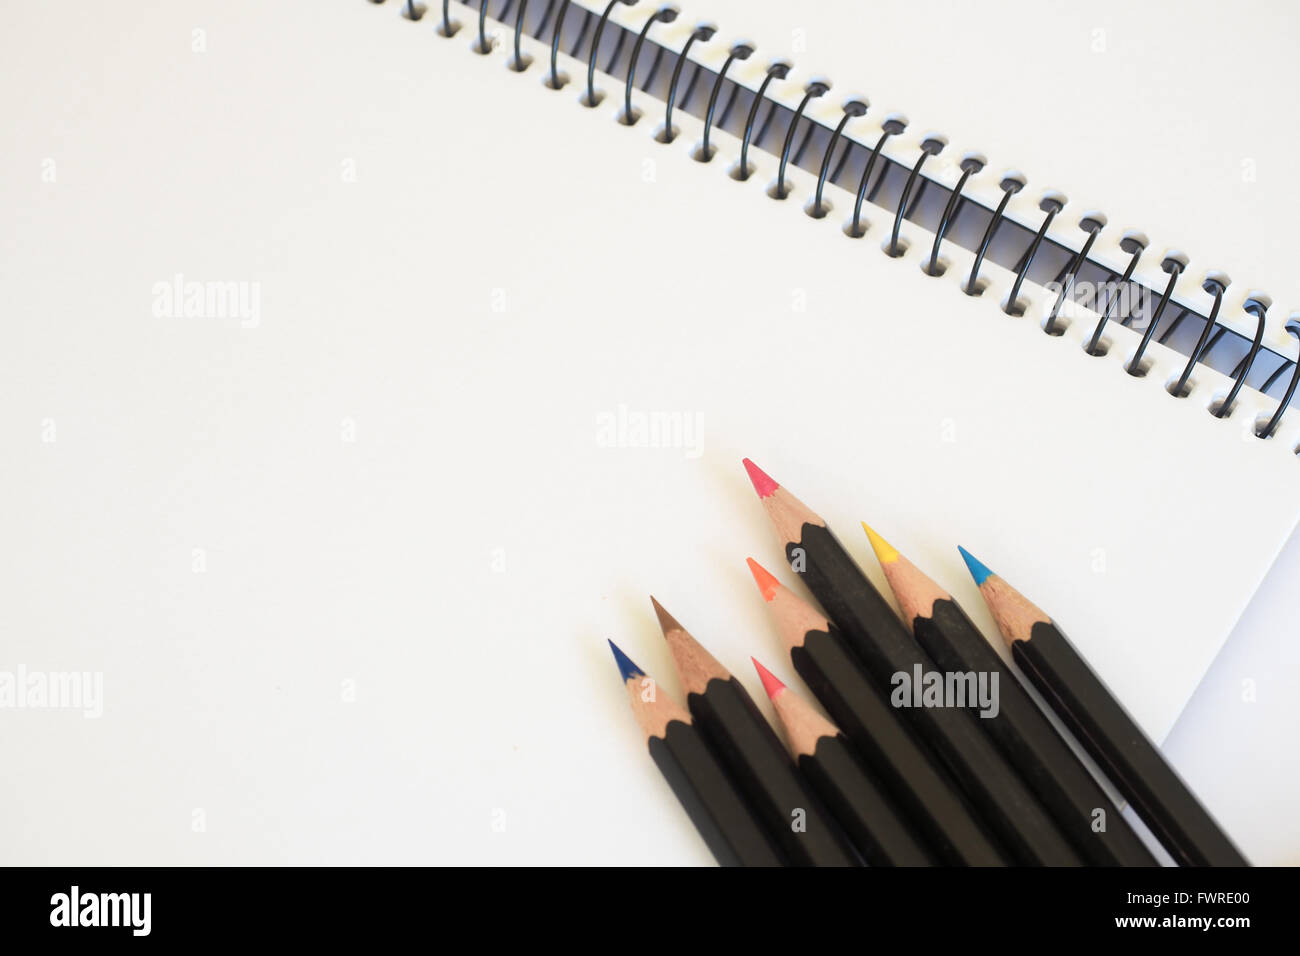 Sketch Pad and Colored Pencils - Stock Image